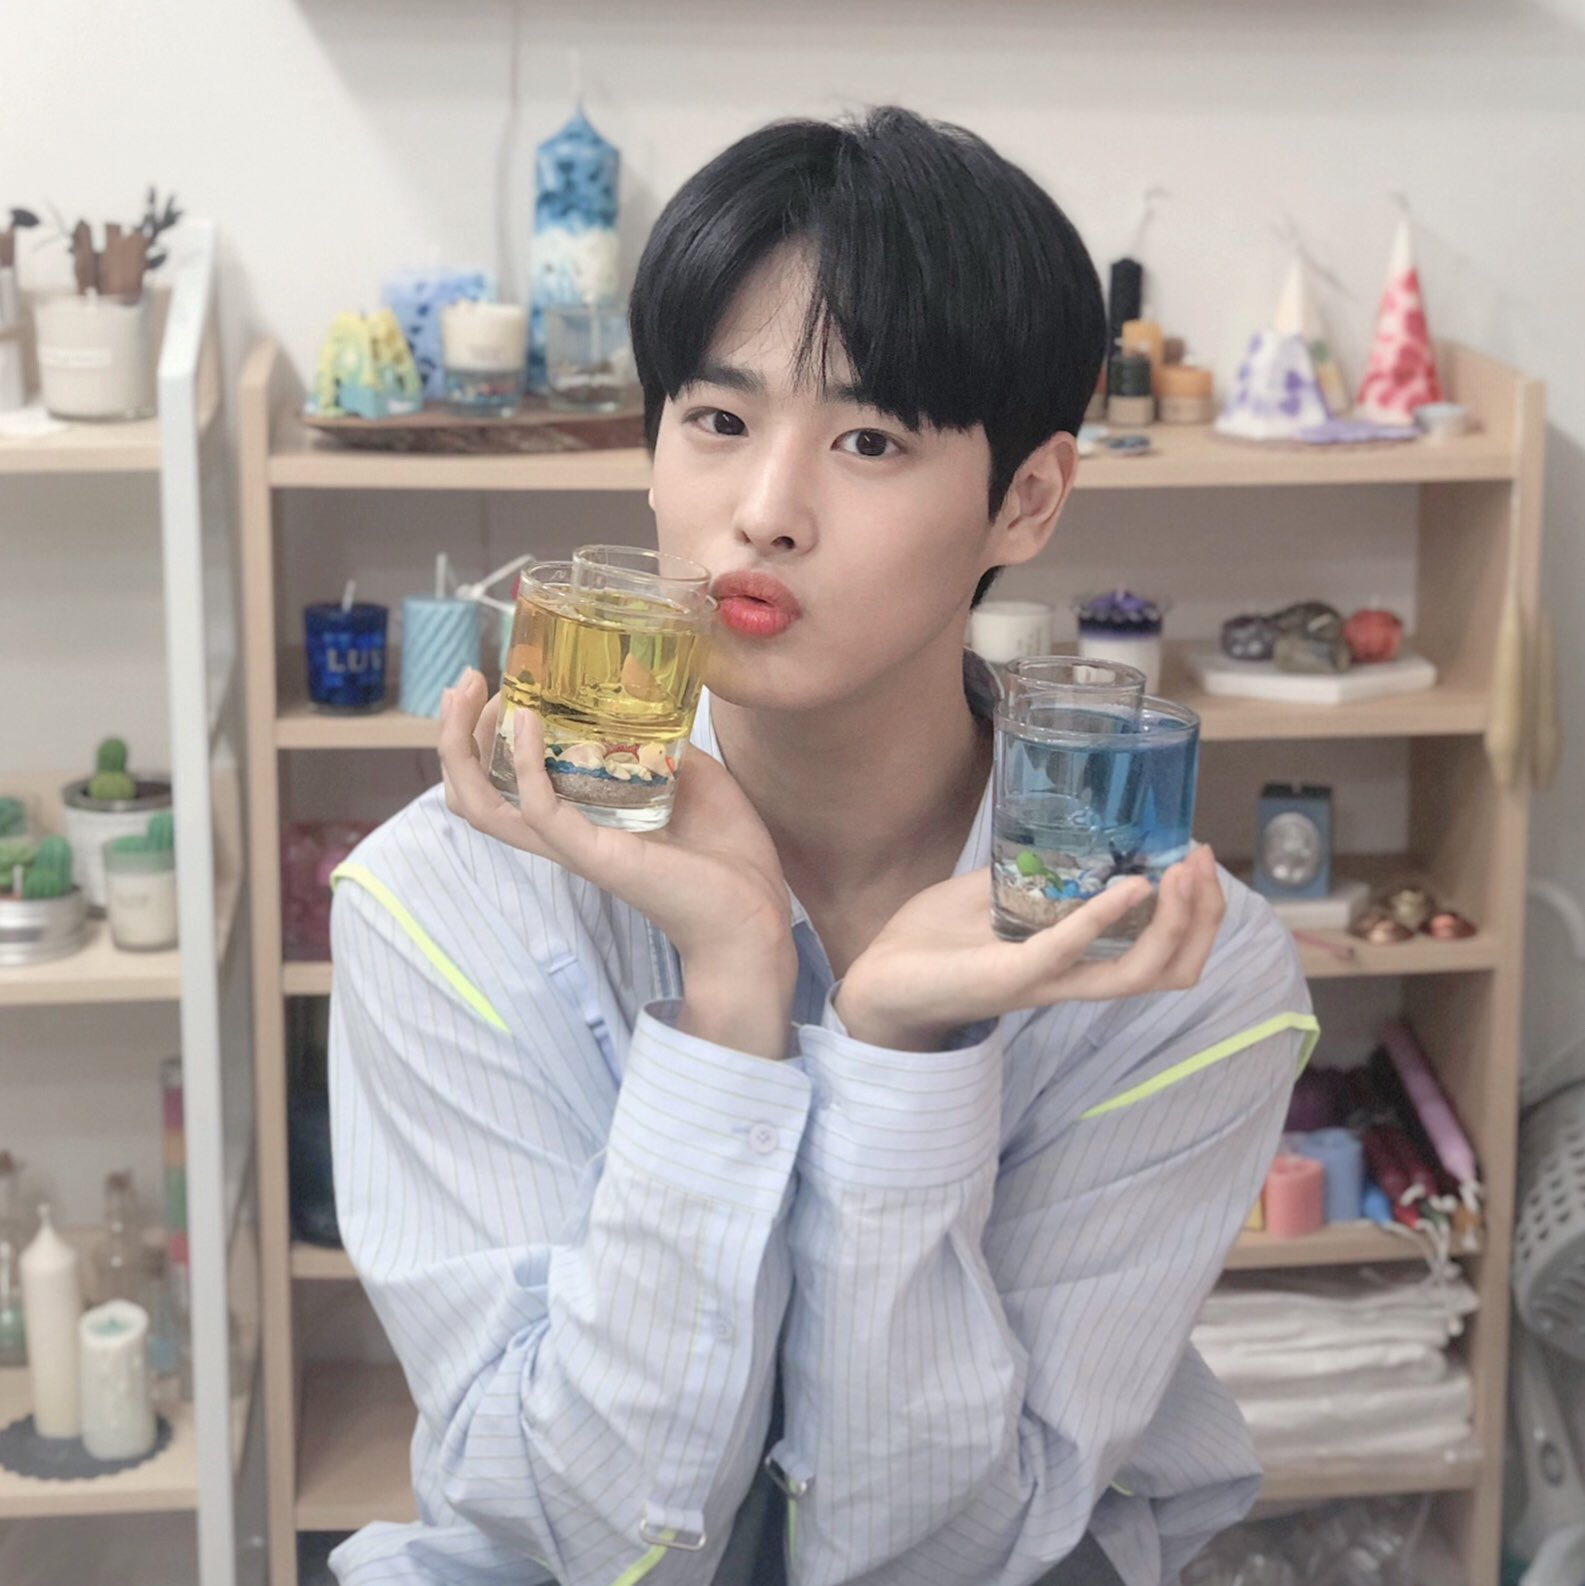 victon, victon profile, victon facts, victon age, victon weight, victon member, victon leader, victon byungchan, byungchan